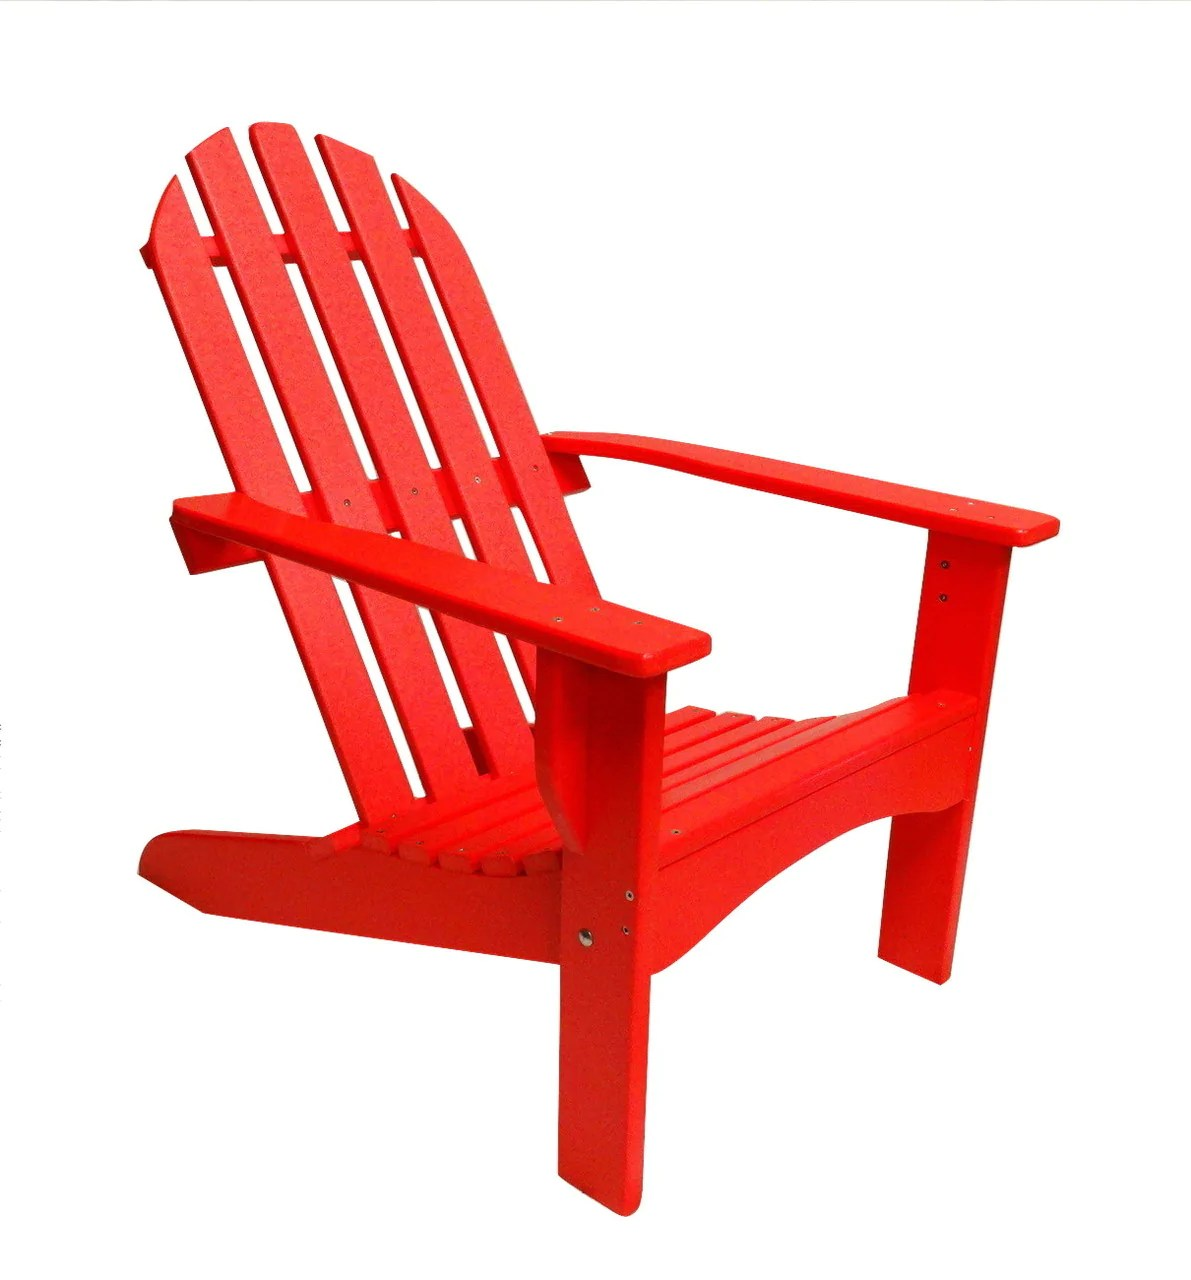 red adirondack chairs plastic large saucer chair cover casual poly evergreen patio